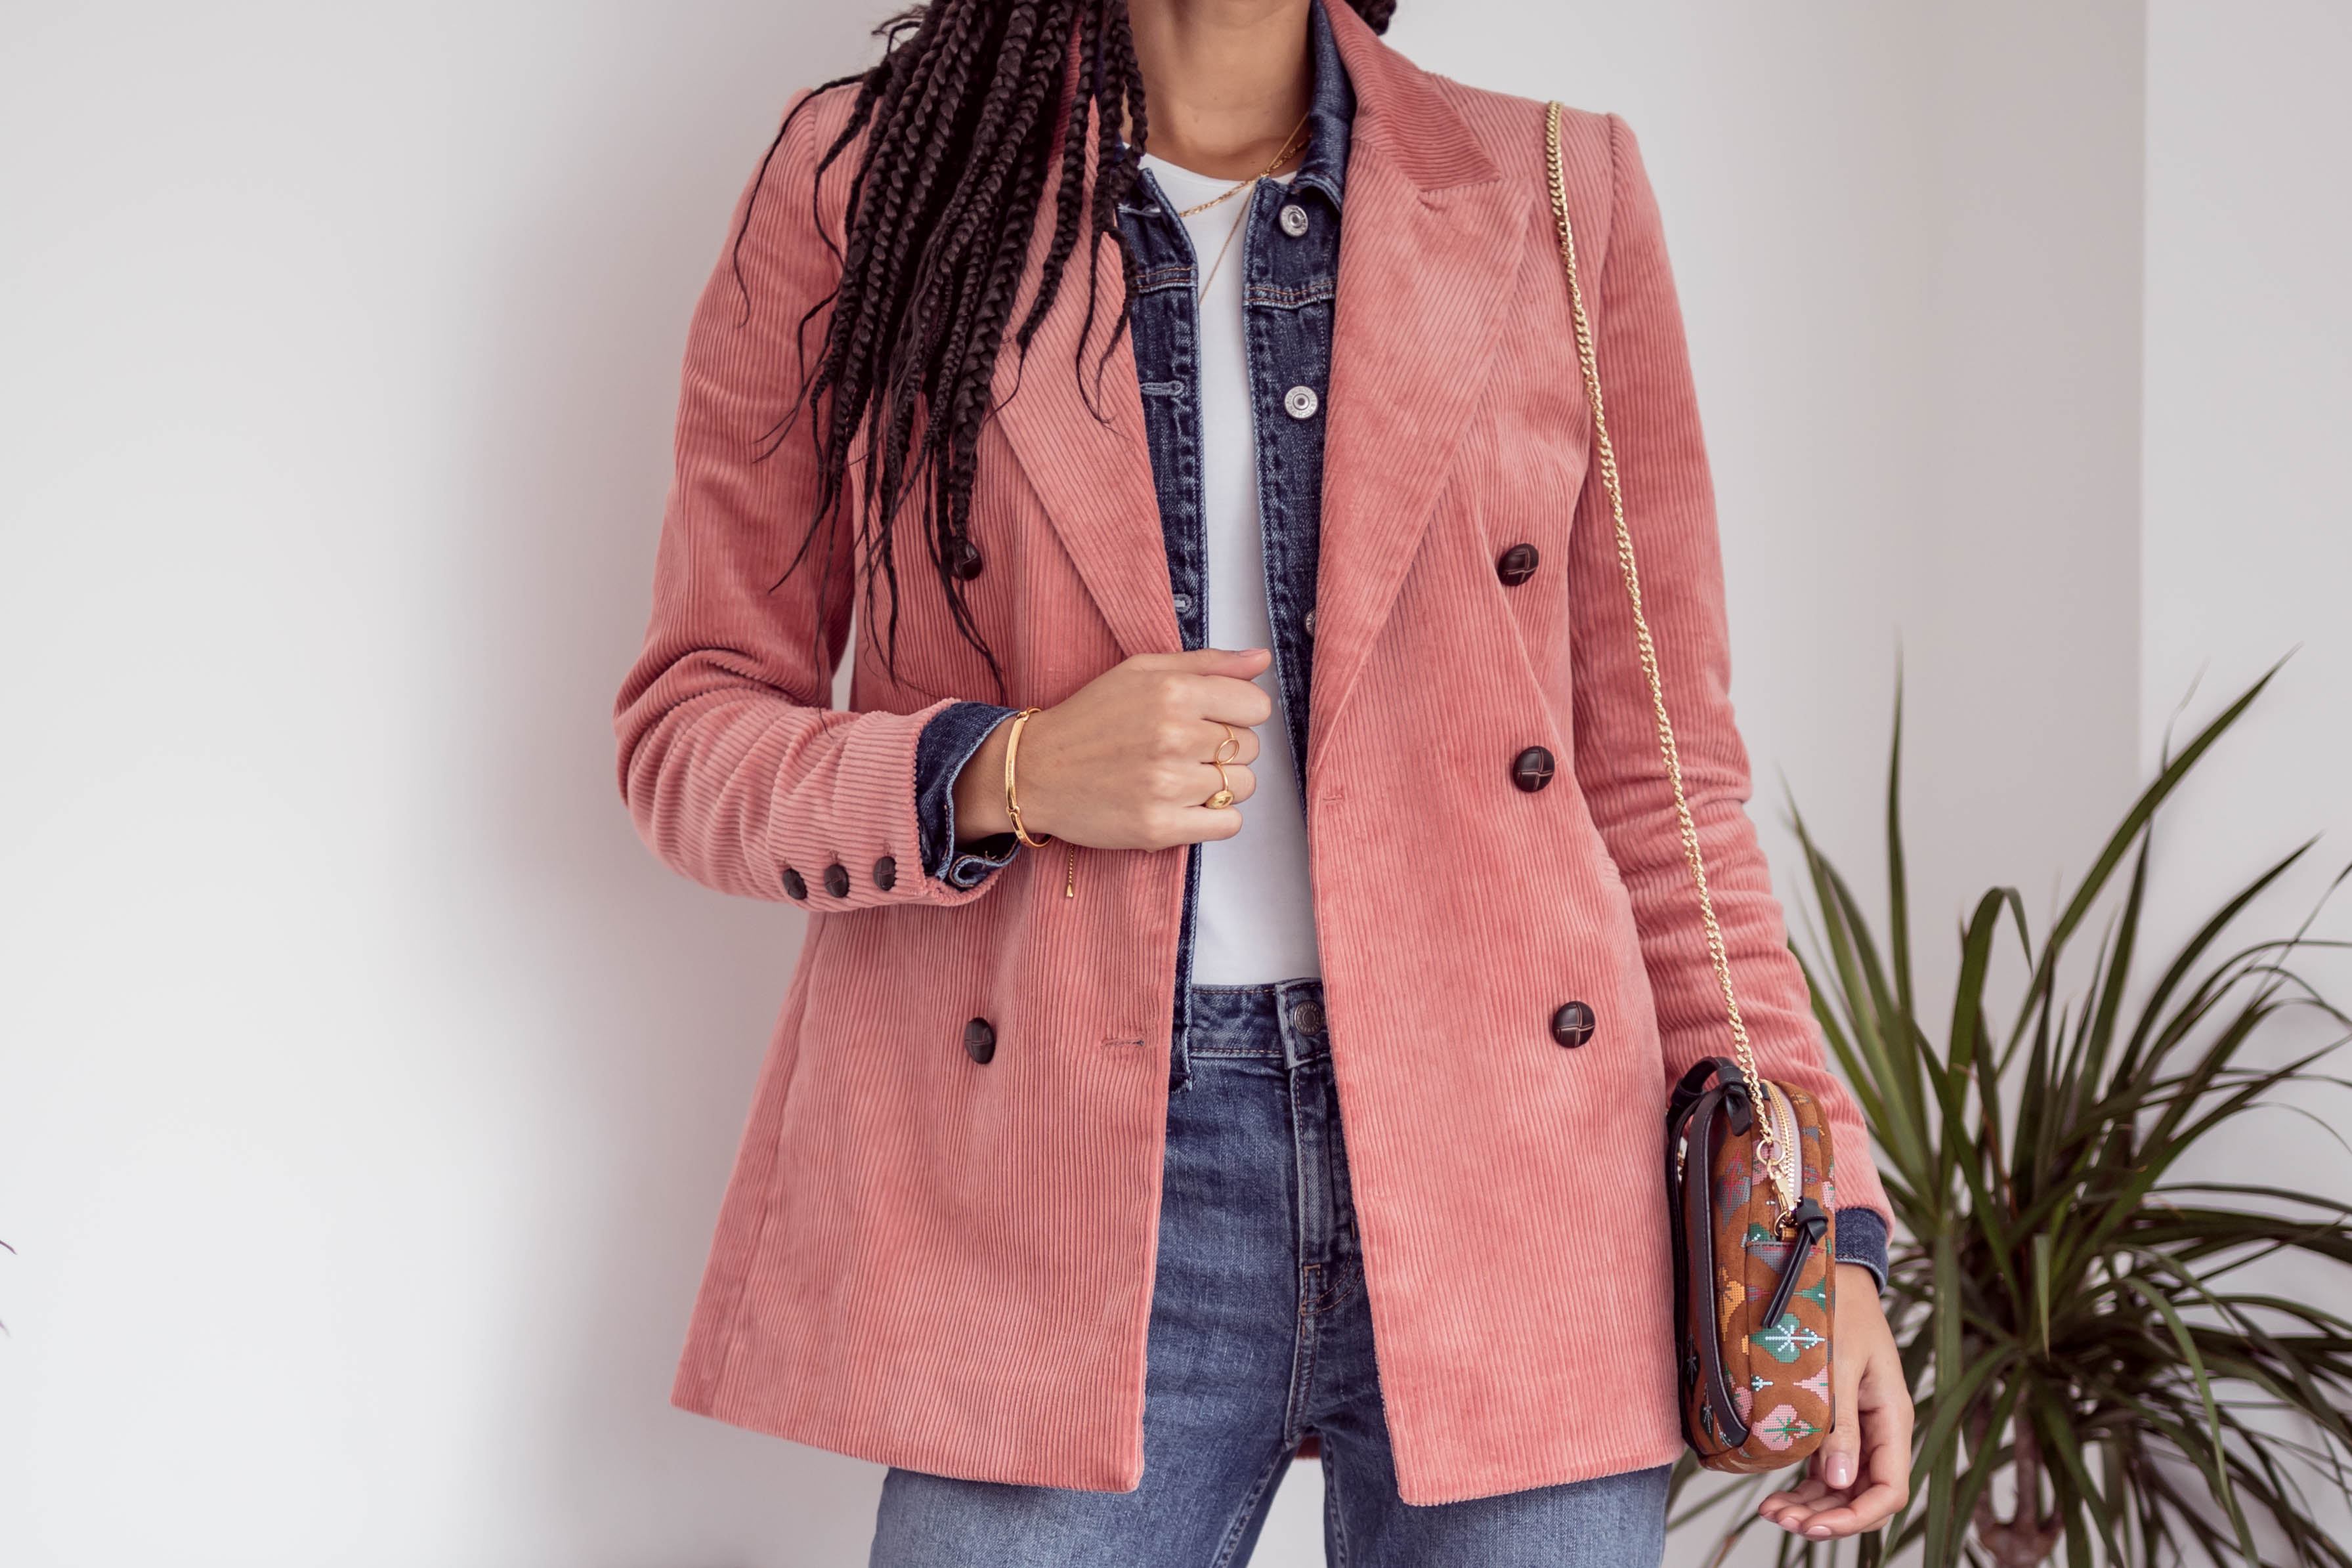 Samio double denim with pink and Other stories double breasted corduroy blazer transitional outfit Samio